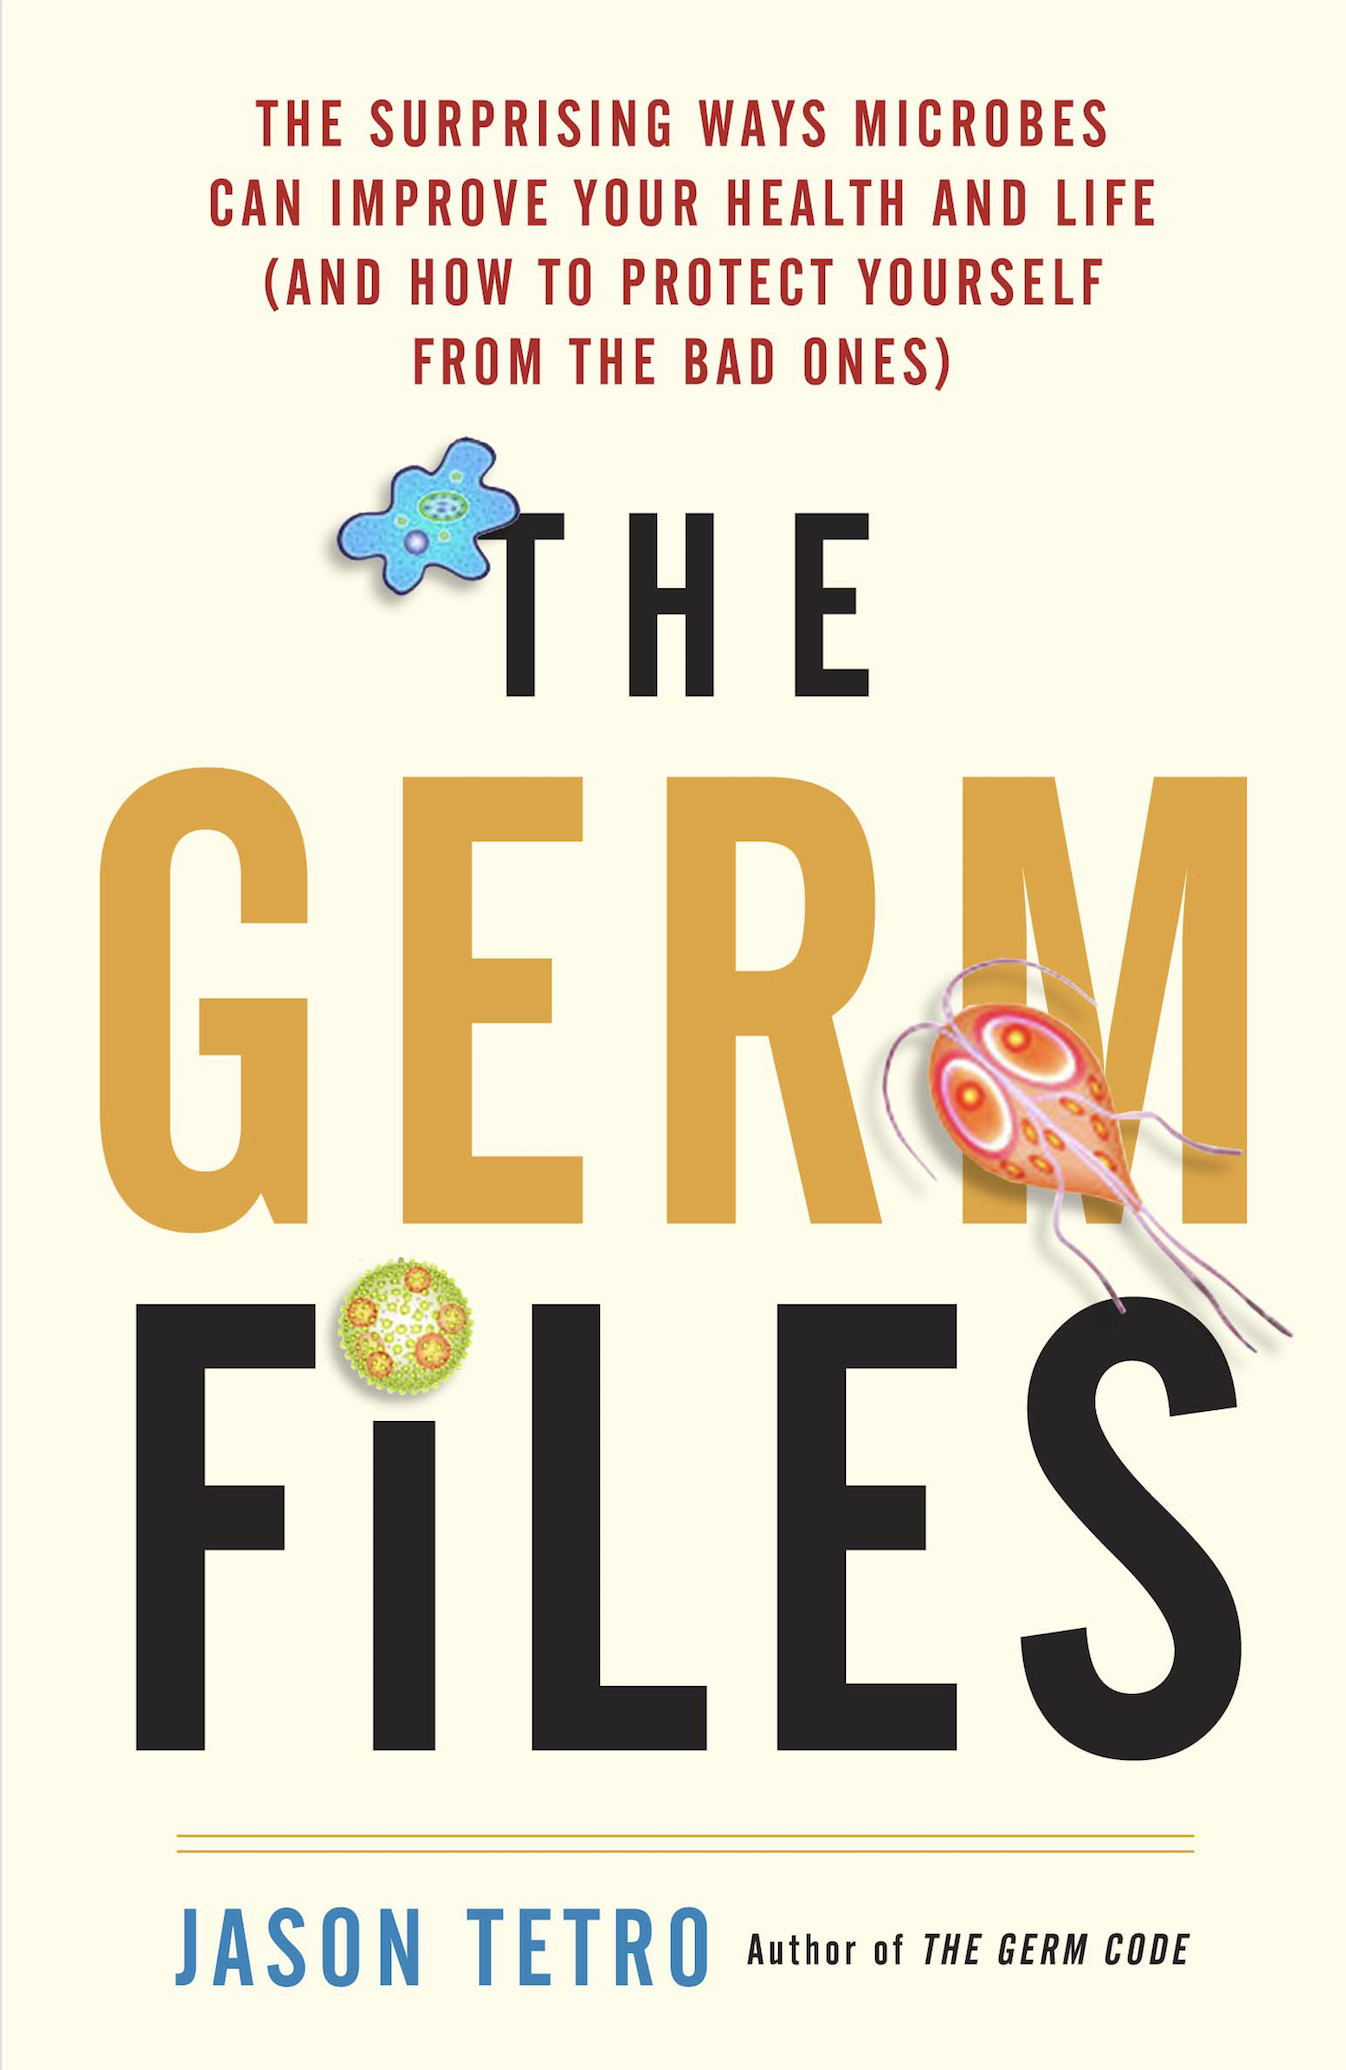 Why Your Gut Microbes Love Intermittent Fasting Life And Tech Code Check Electrical Hundreds Of Nec Facts At Body Good Bad Out Jason Tetros Book The Germ Files Special Thanks To For Helping Edit Fact This Blog Post